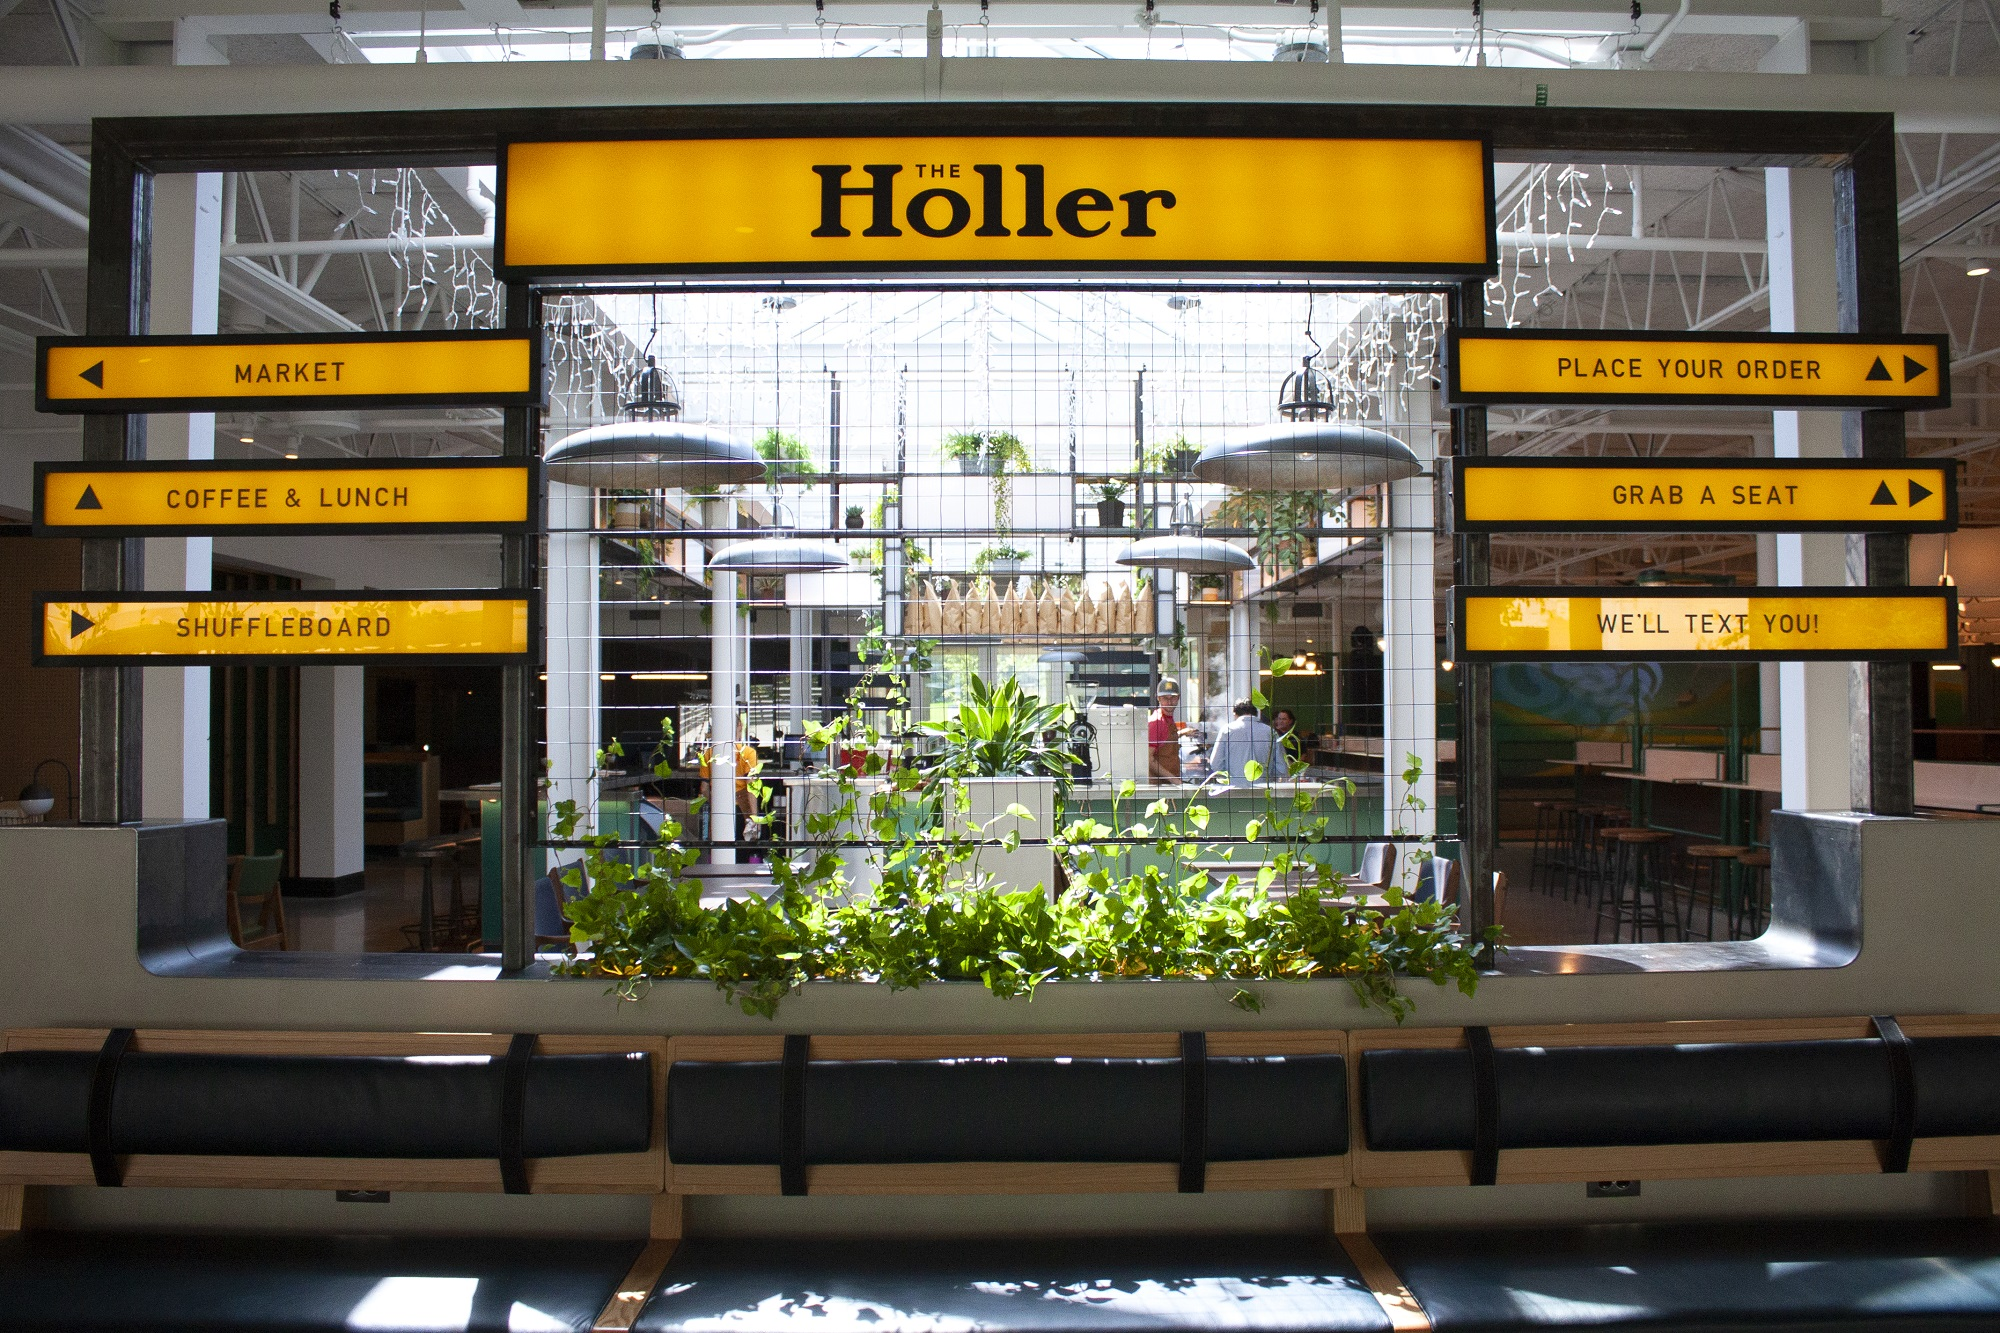 The Holler is Set to Open in 8th Street Market, Bringing Bentonville a Local Hangout